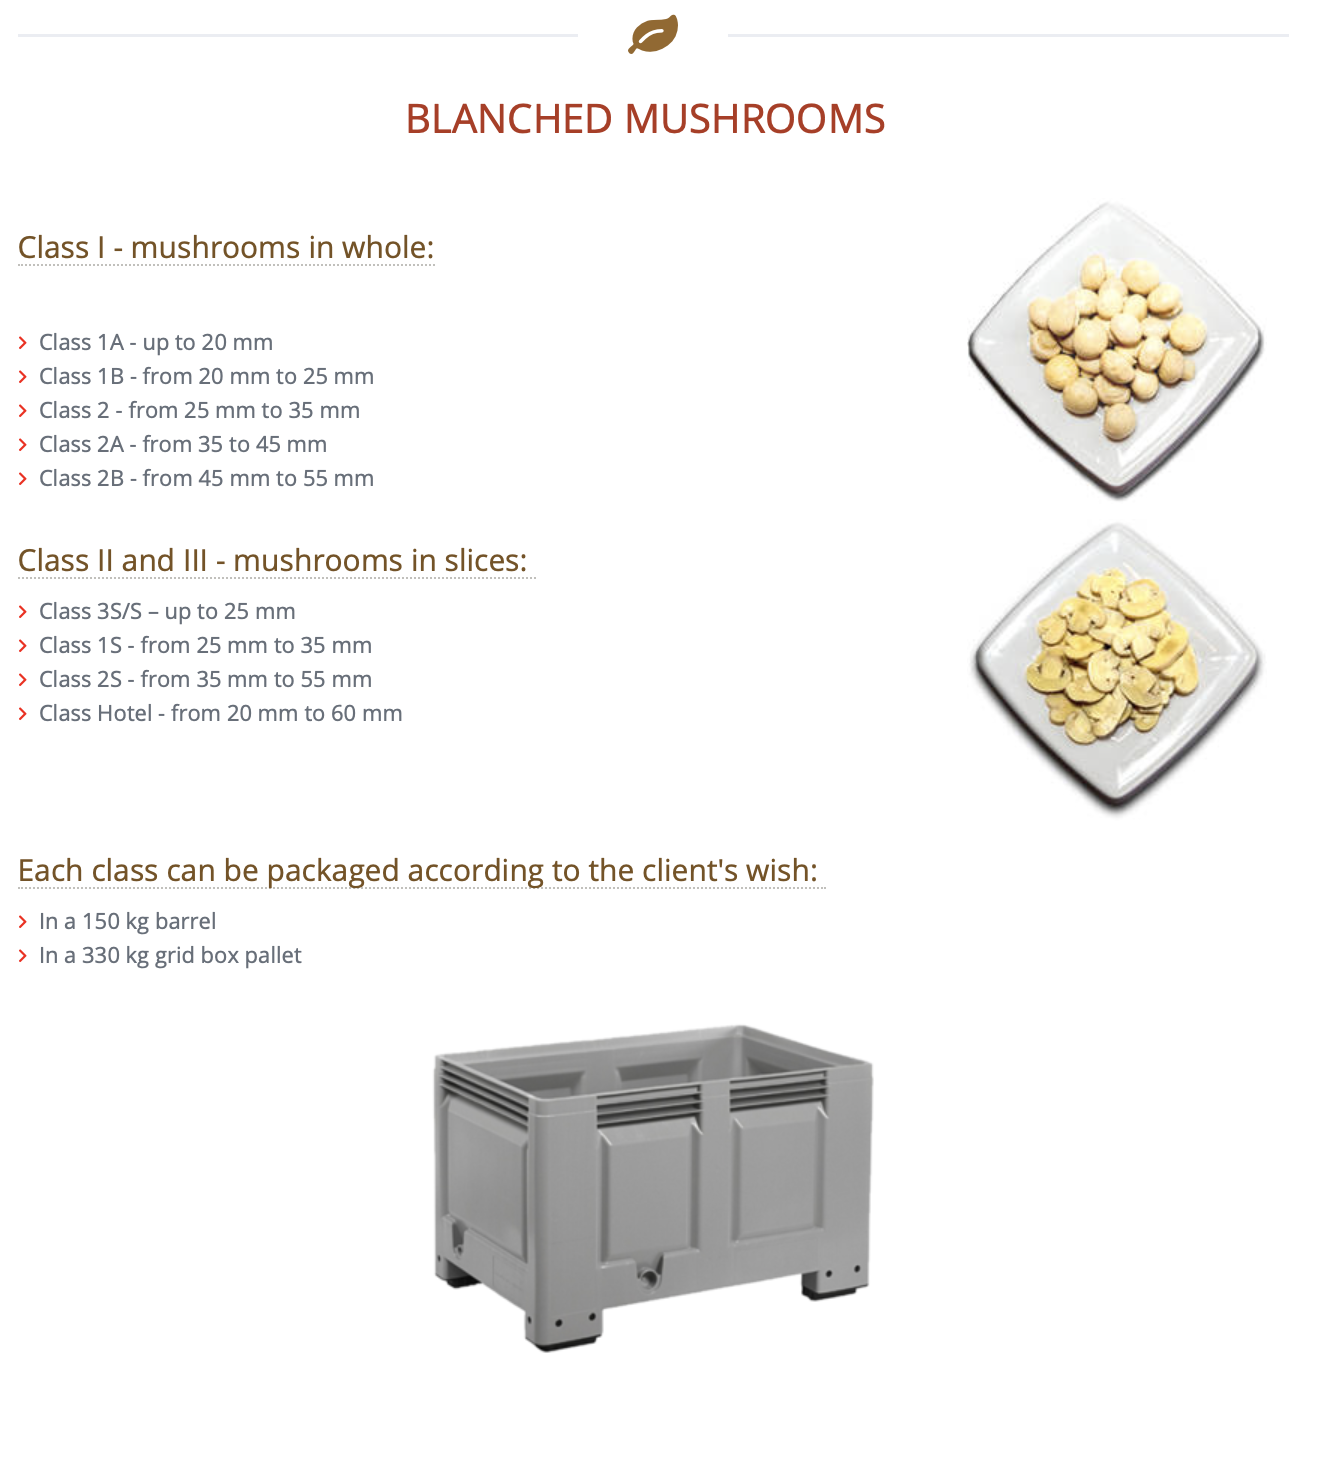 We Supply Fresh Mushrooms To Wholesale Markets, Restaurants, Direct To Consumers & More.